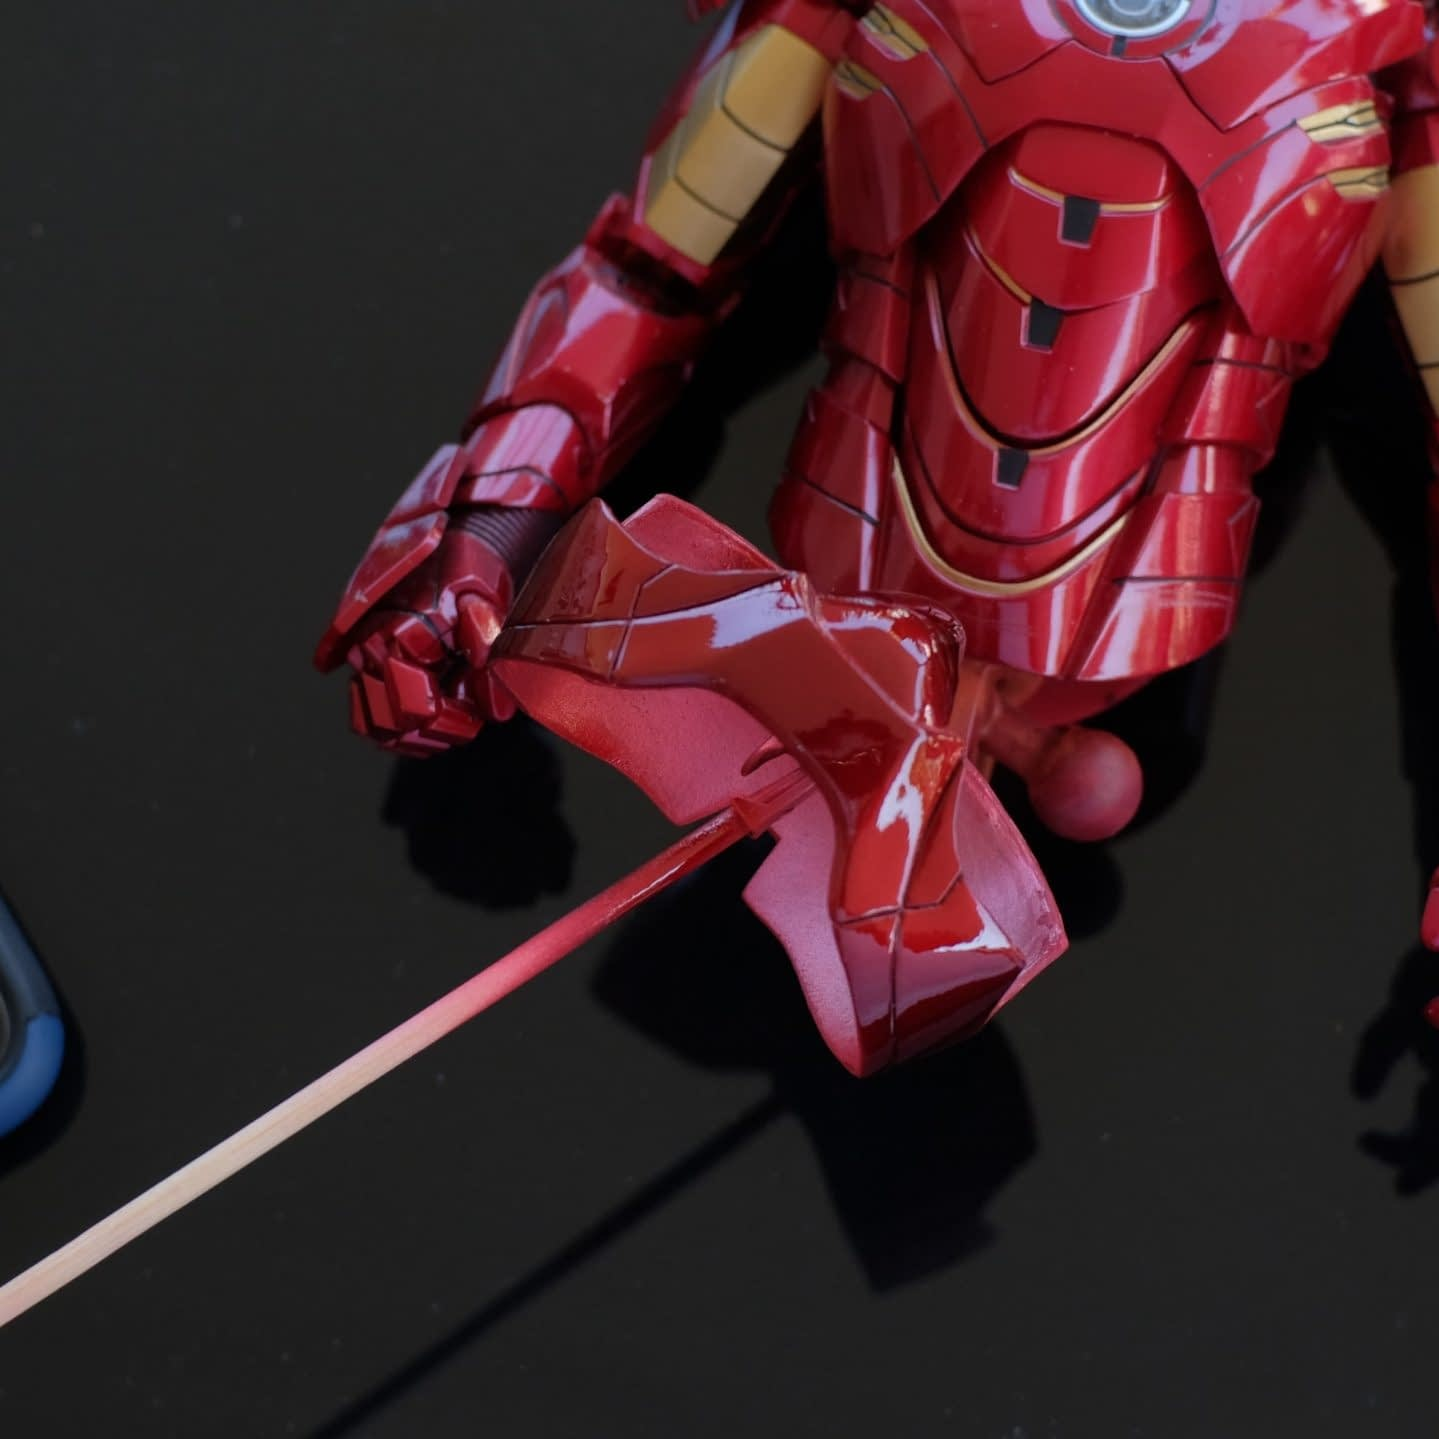 How to fix HT's Iron Man pink panty issue 6